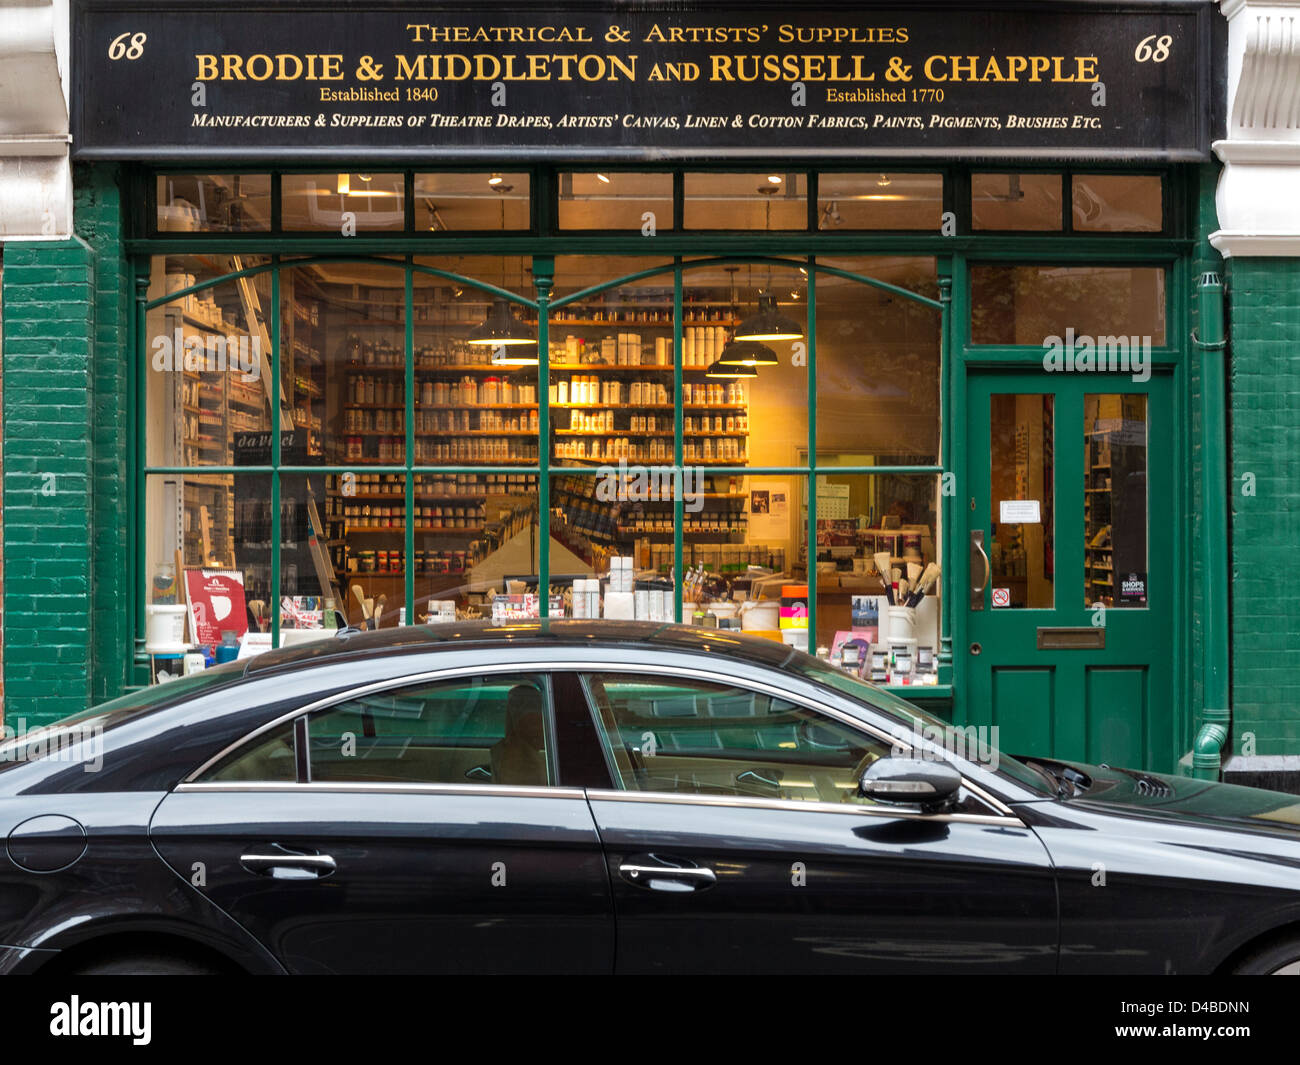 Theatre and Artists Supplies shop in Drury Lane, London, England - Stock Image